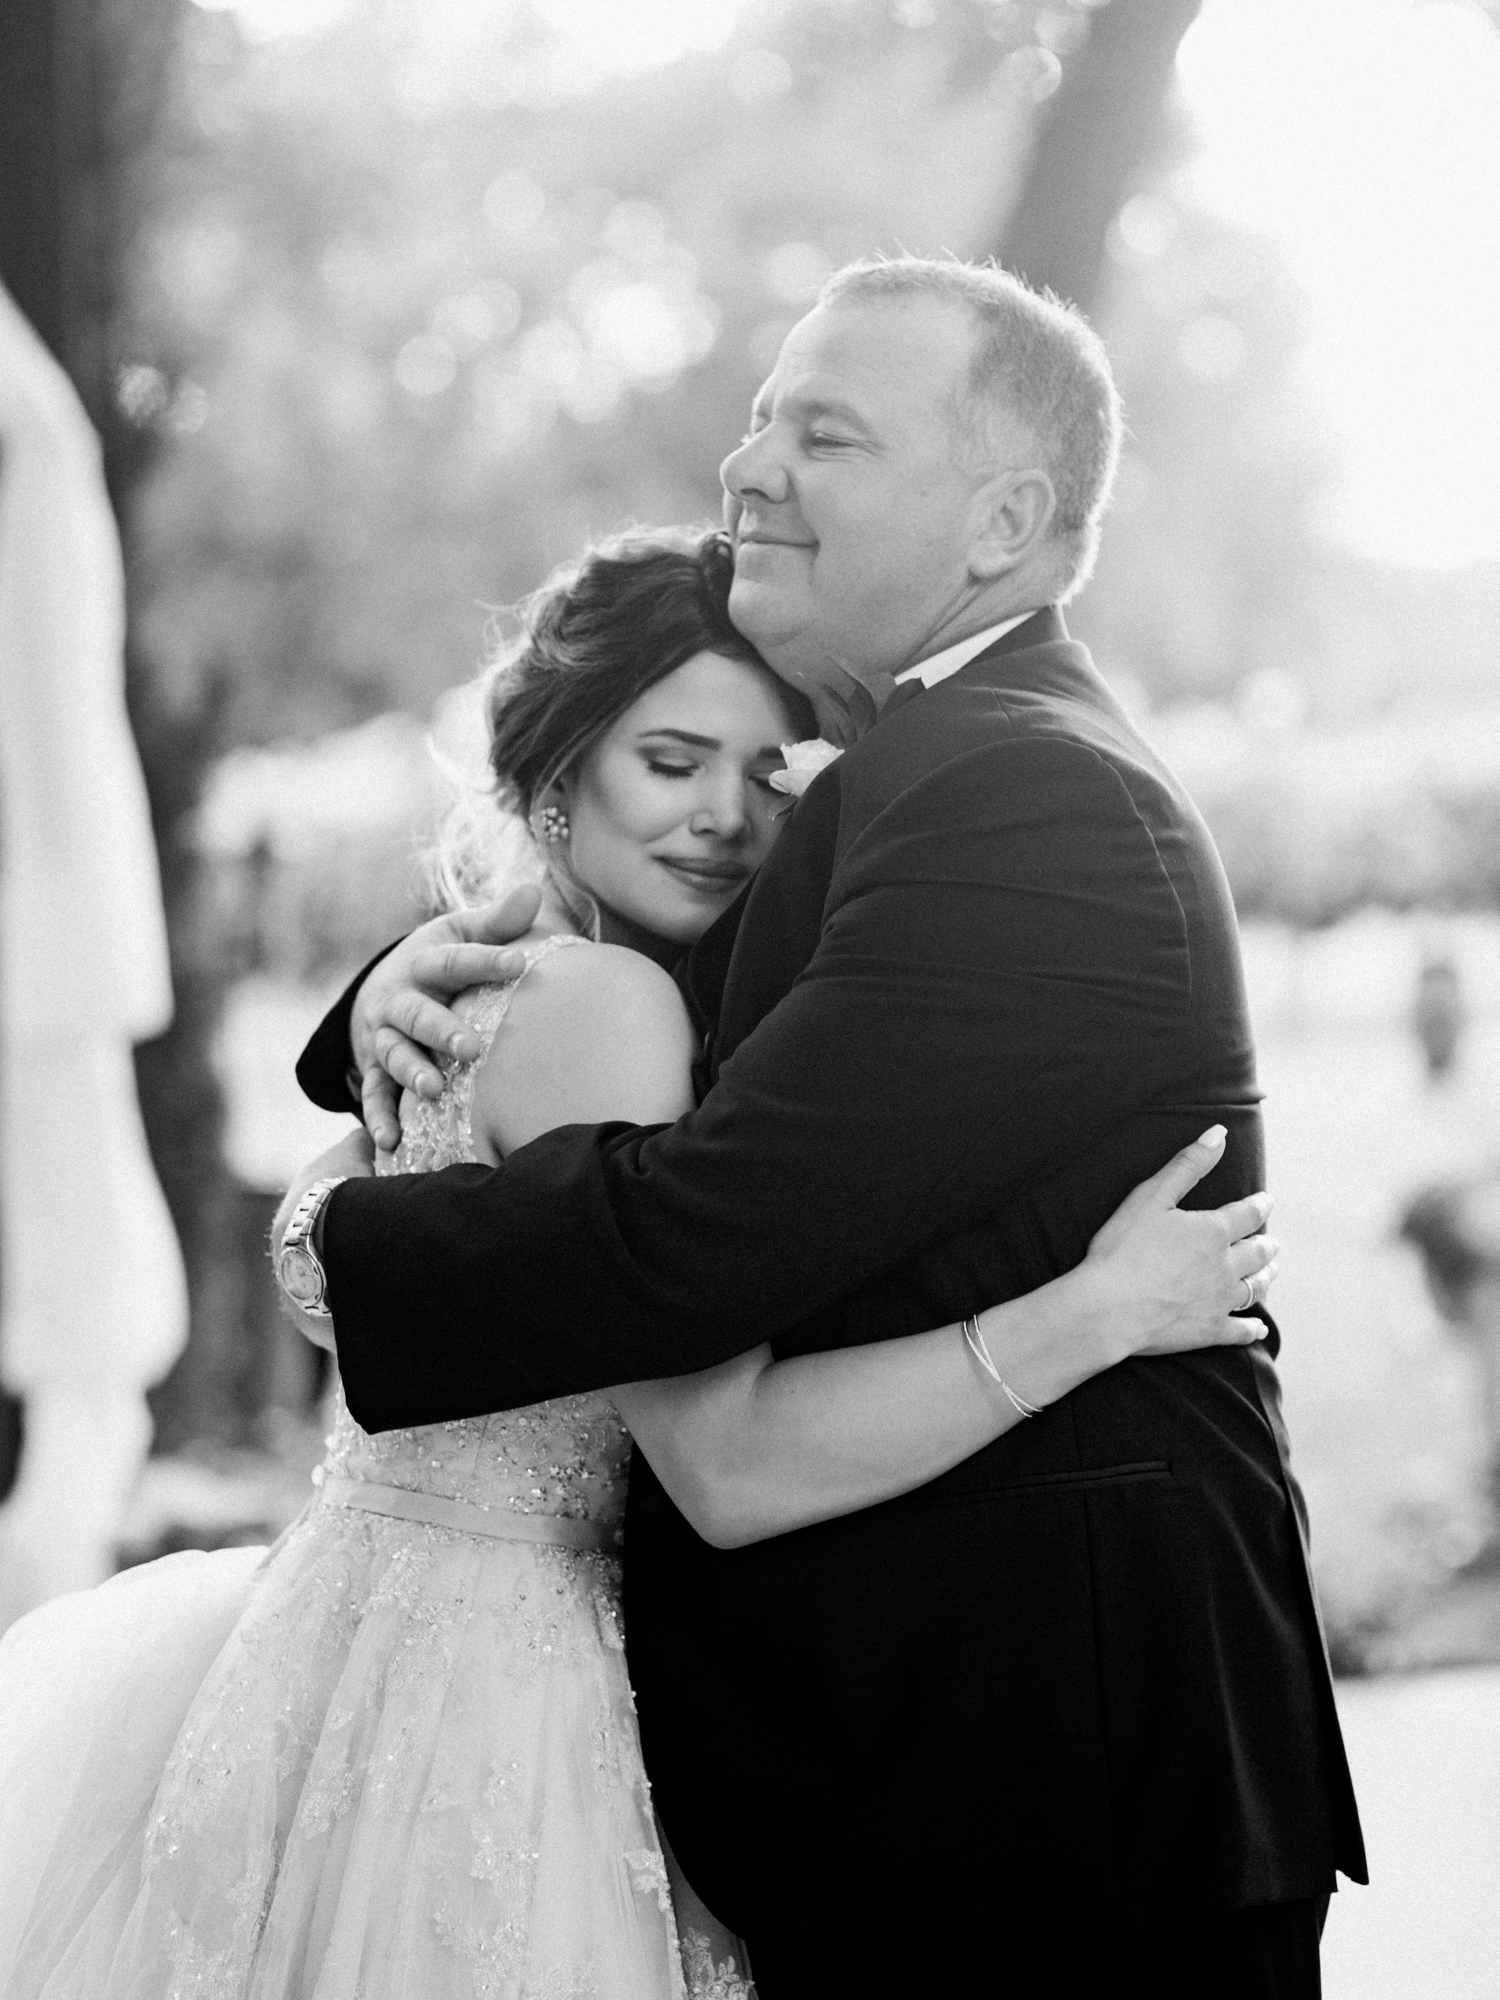 Elegant Spring Vineyard Wedding | Film Wedding Photographer | Austin Wedding Photographer | The Sweetest Father Daughter Wedding Dance | Britni Dean Photography // britnidean.com